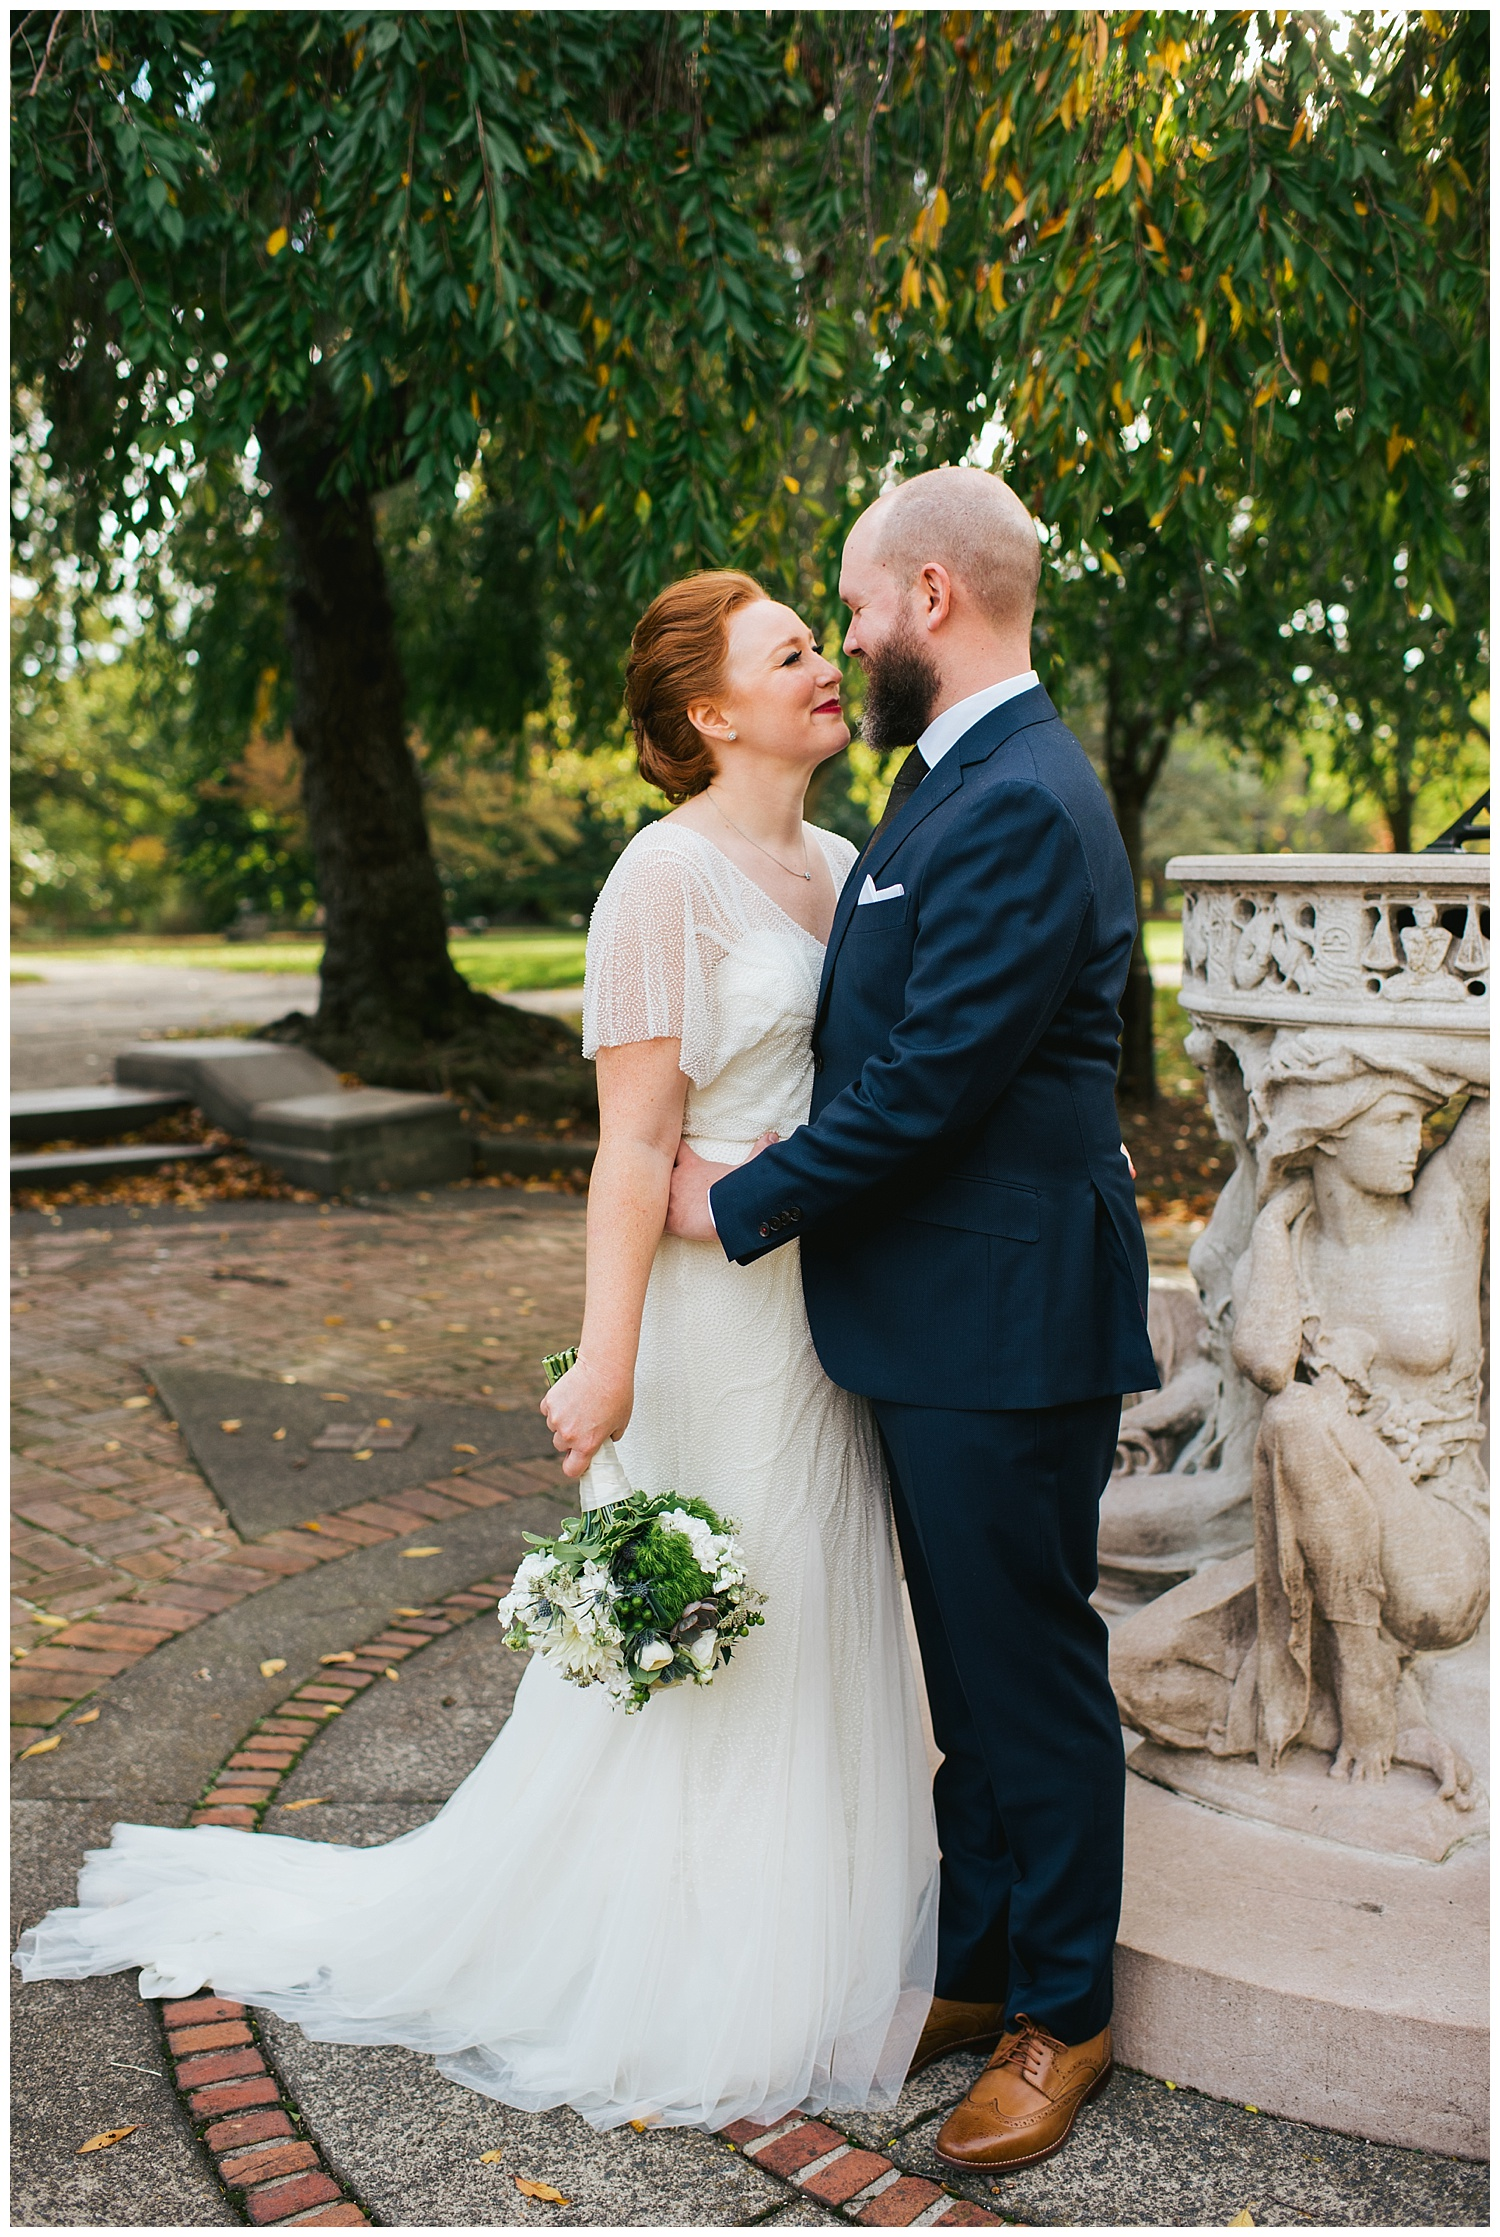 Philly Wedding at Fairmount Park Horticulture Center | Philadelphia, PA | www.redoakweddings.com